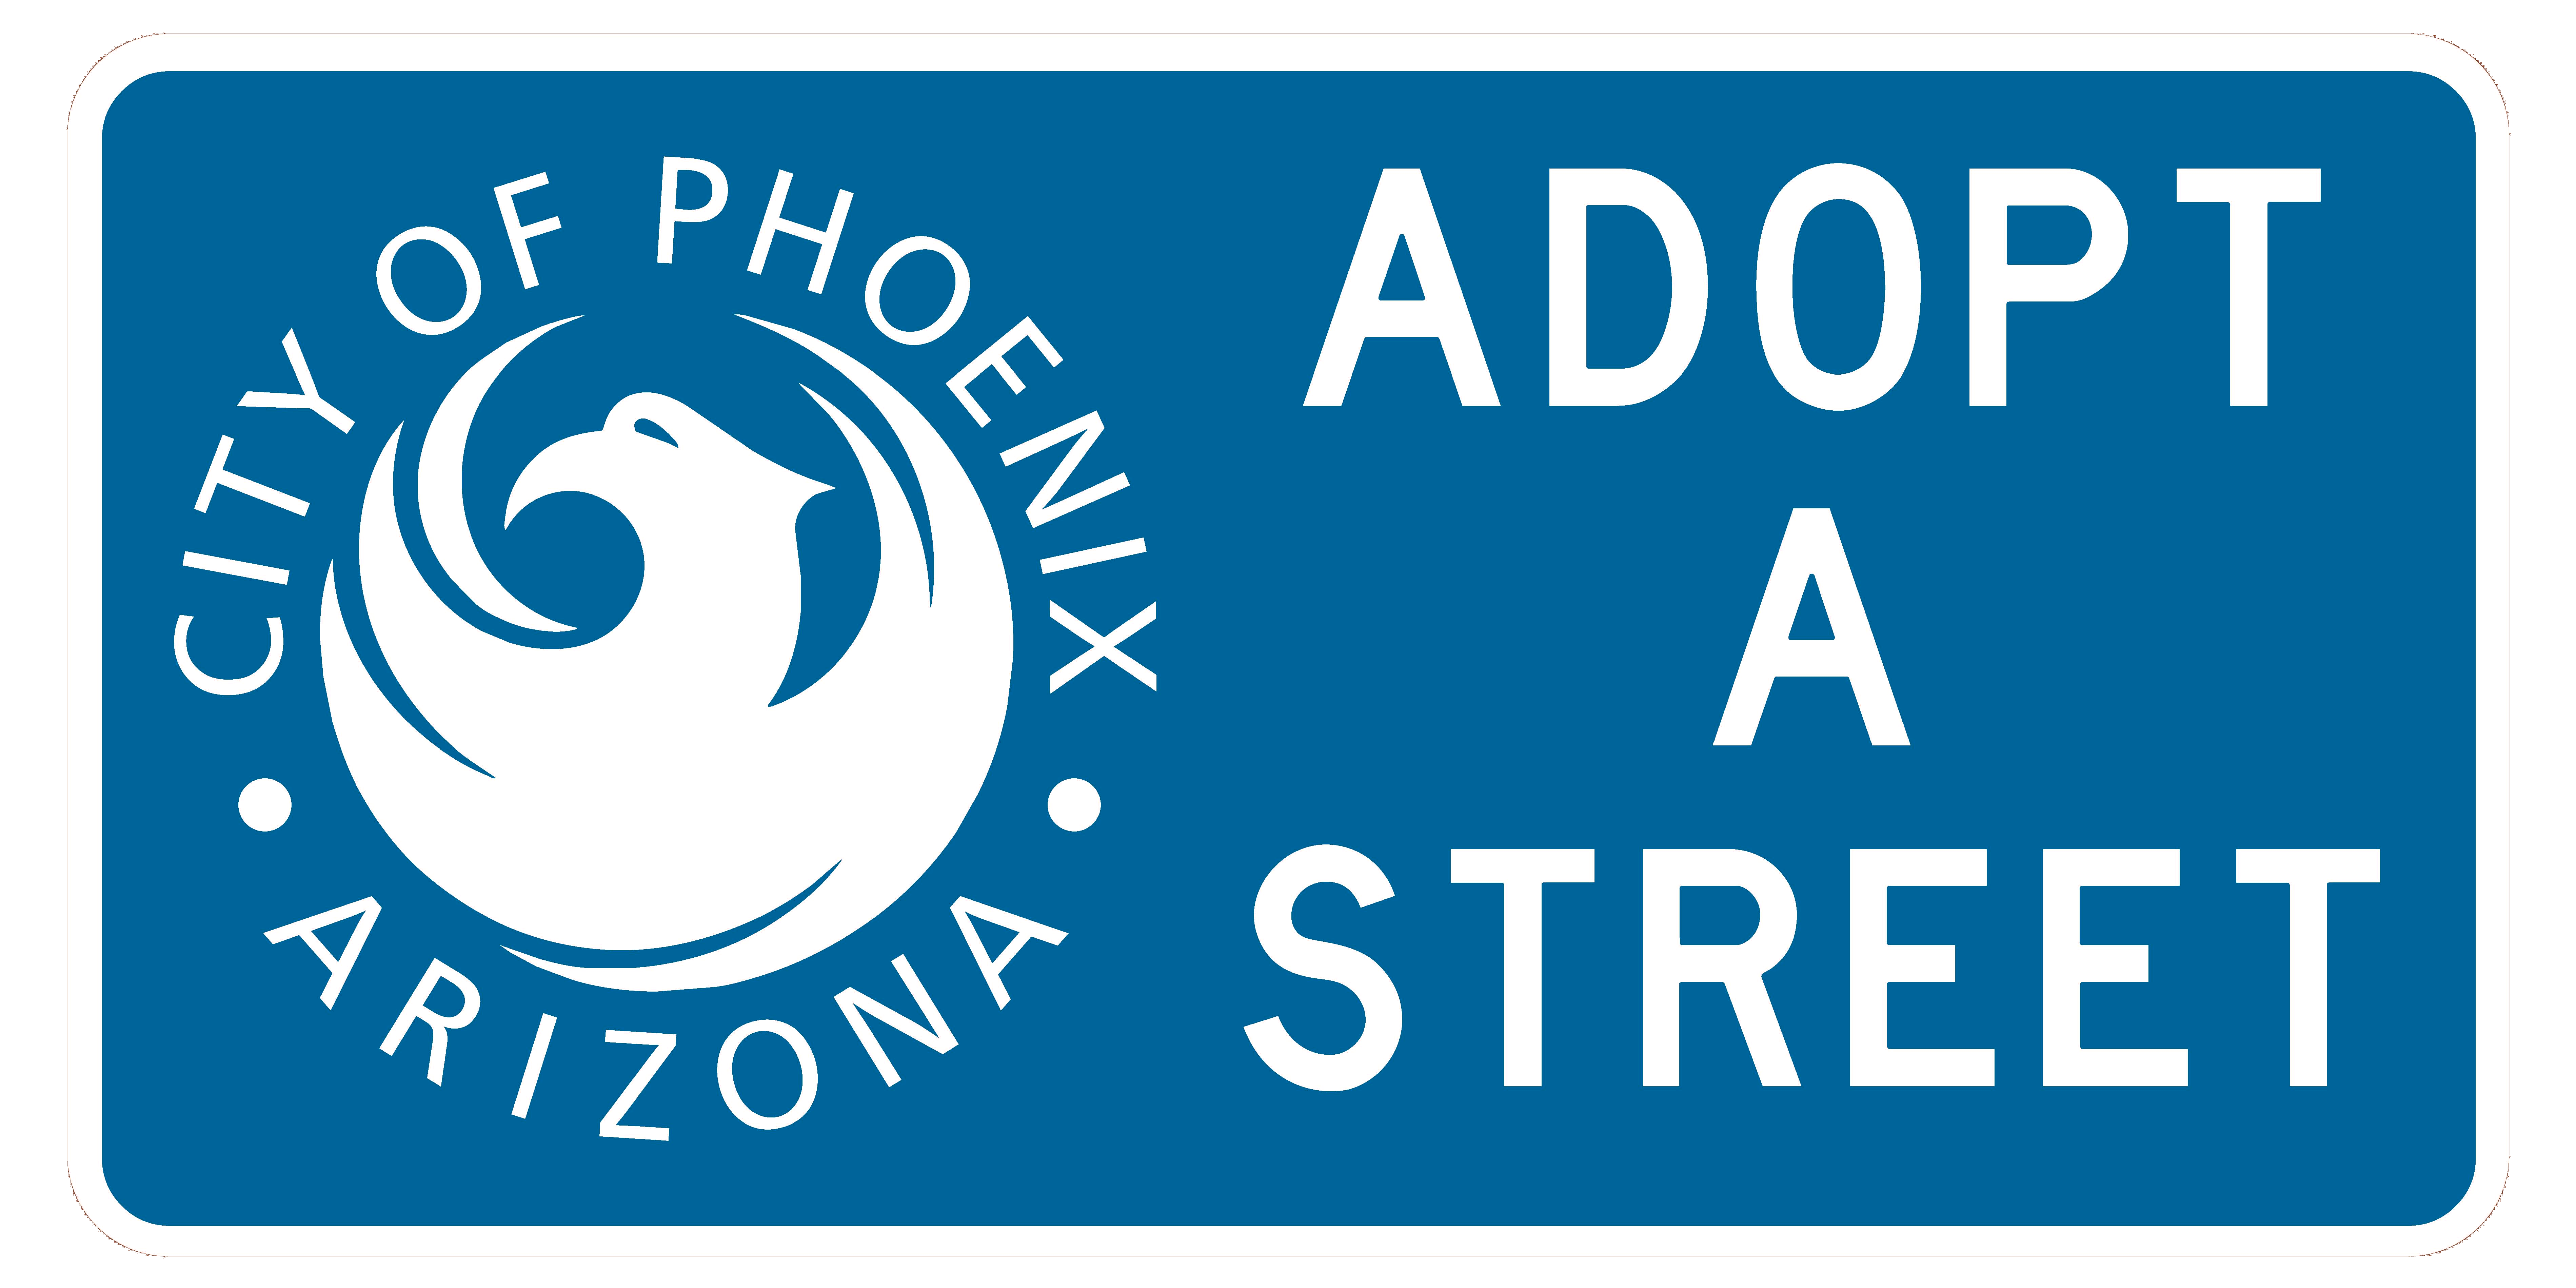 Photo of an Adopt-A-Street Sign